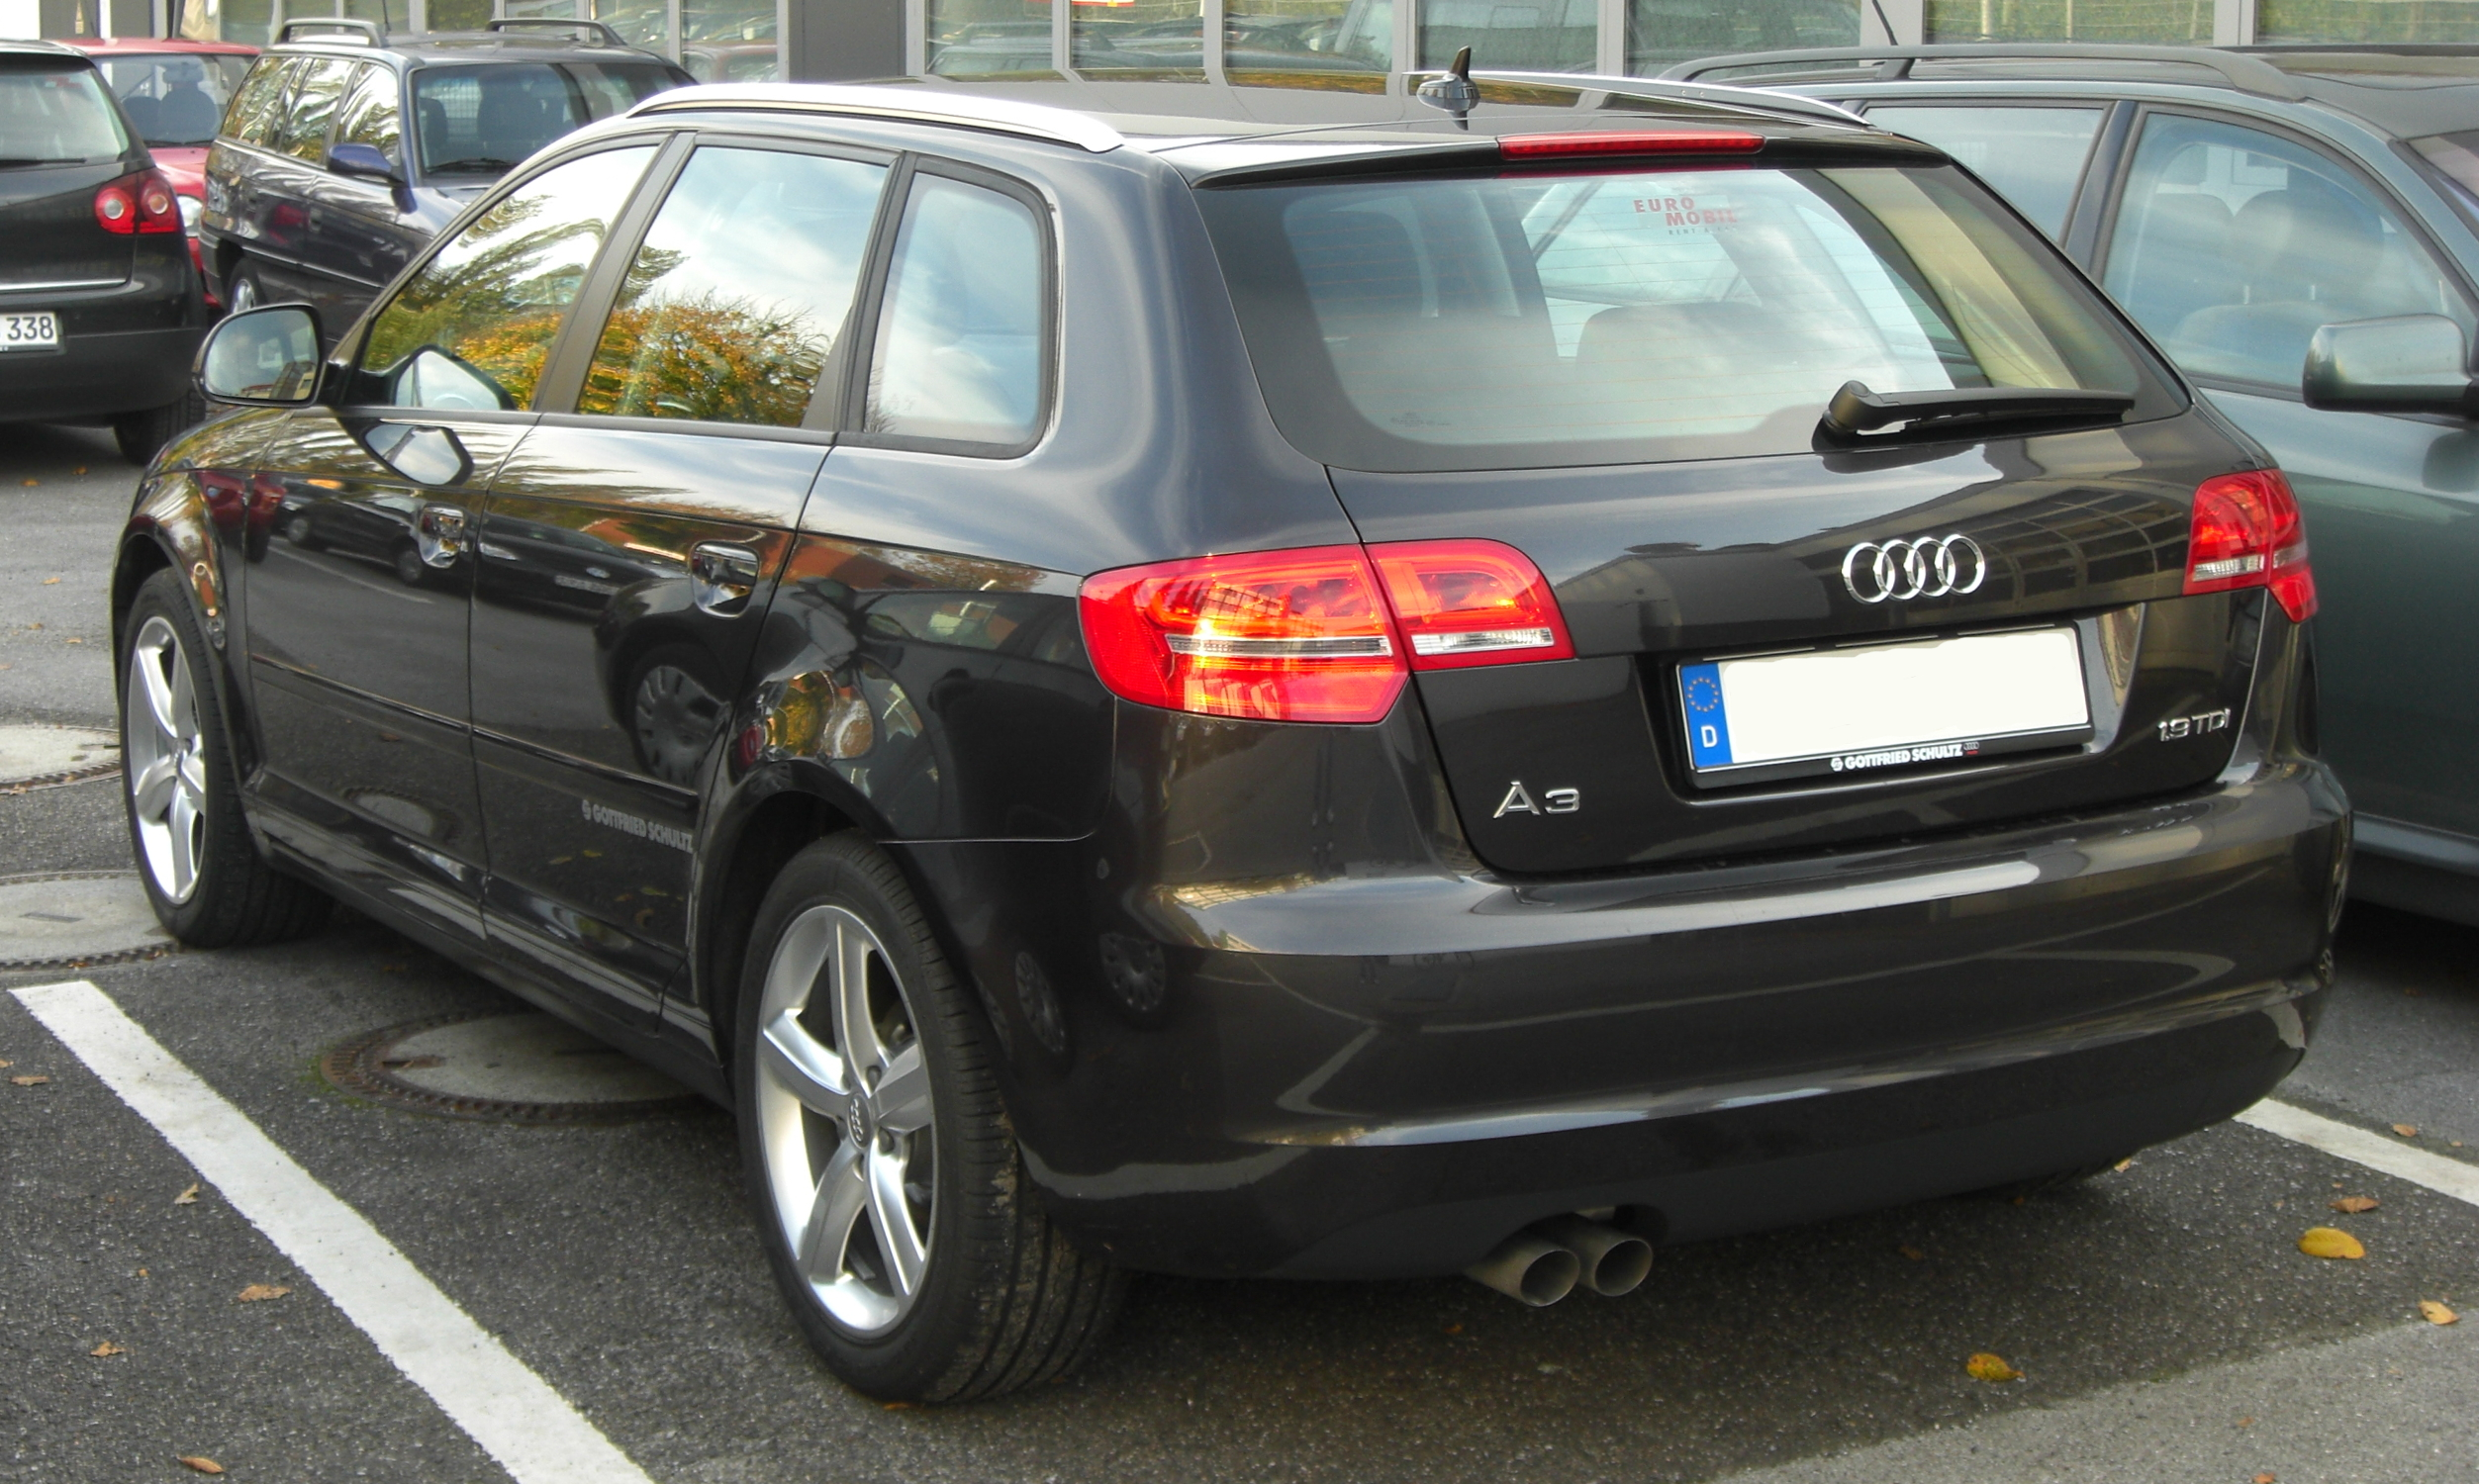 file audi a3 sportback 1 9 tdi ii facelift rear jpg wikimedia commons. Black Bedroom Furniture Sets. Home Design Ideas